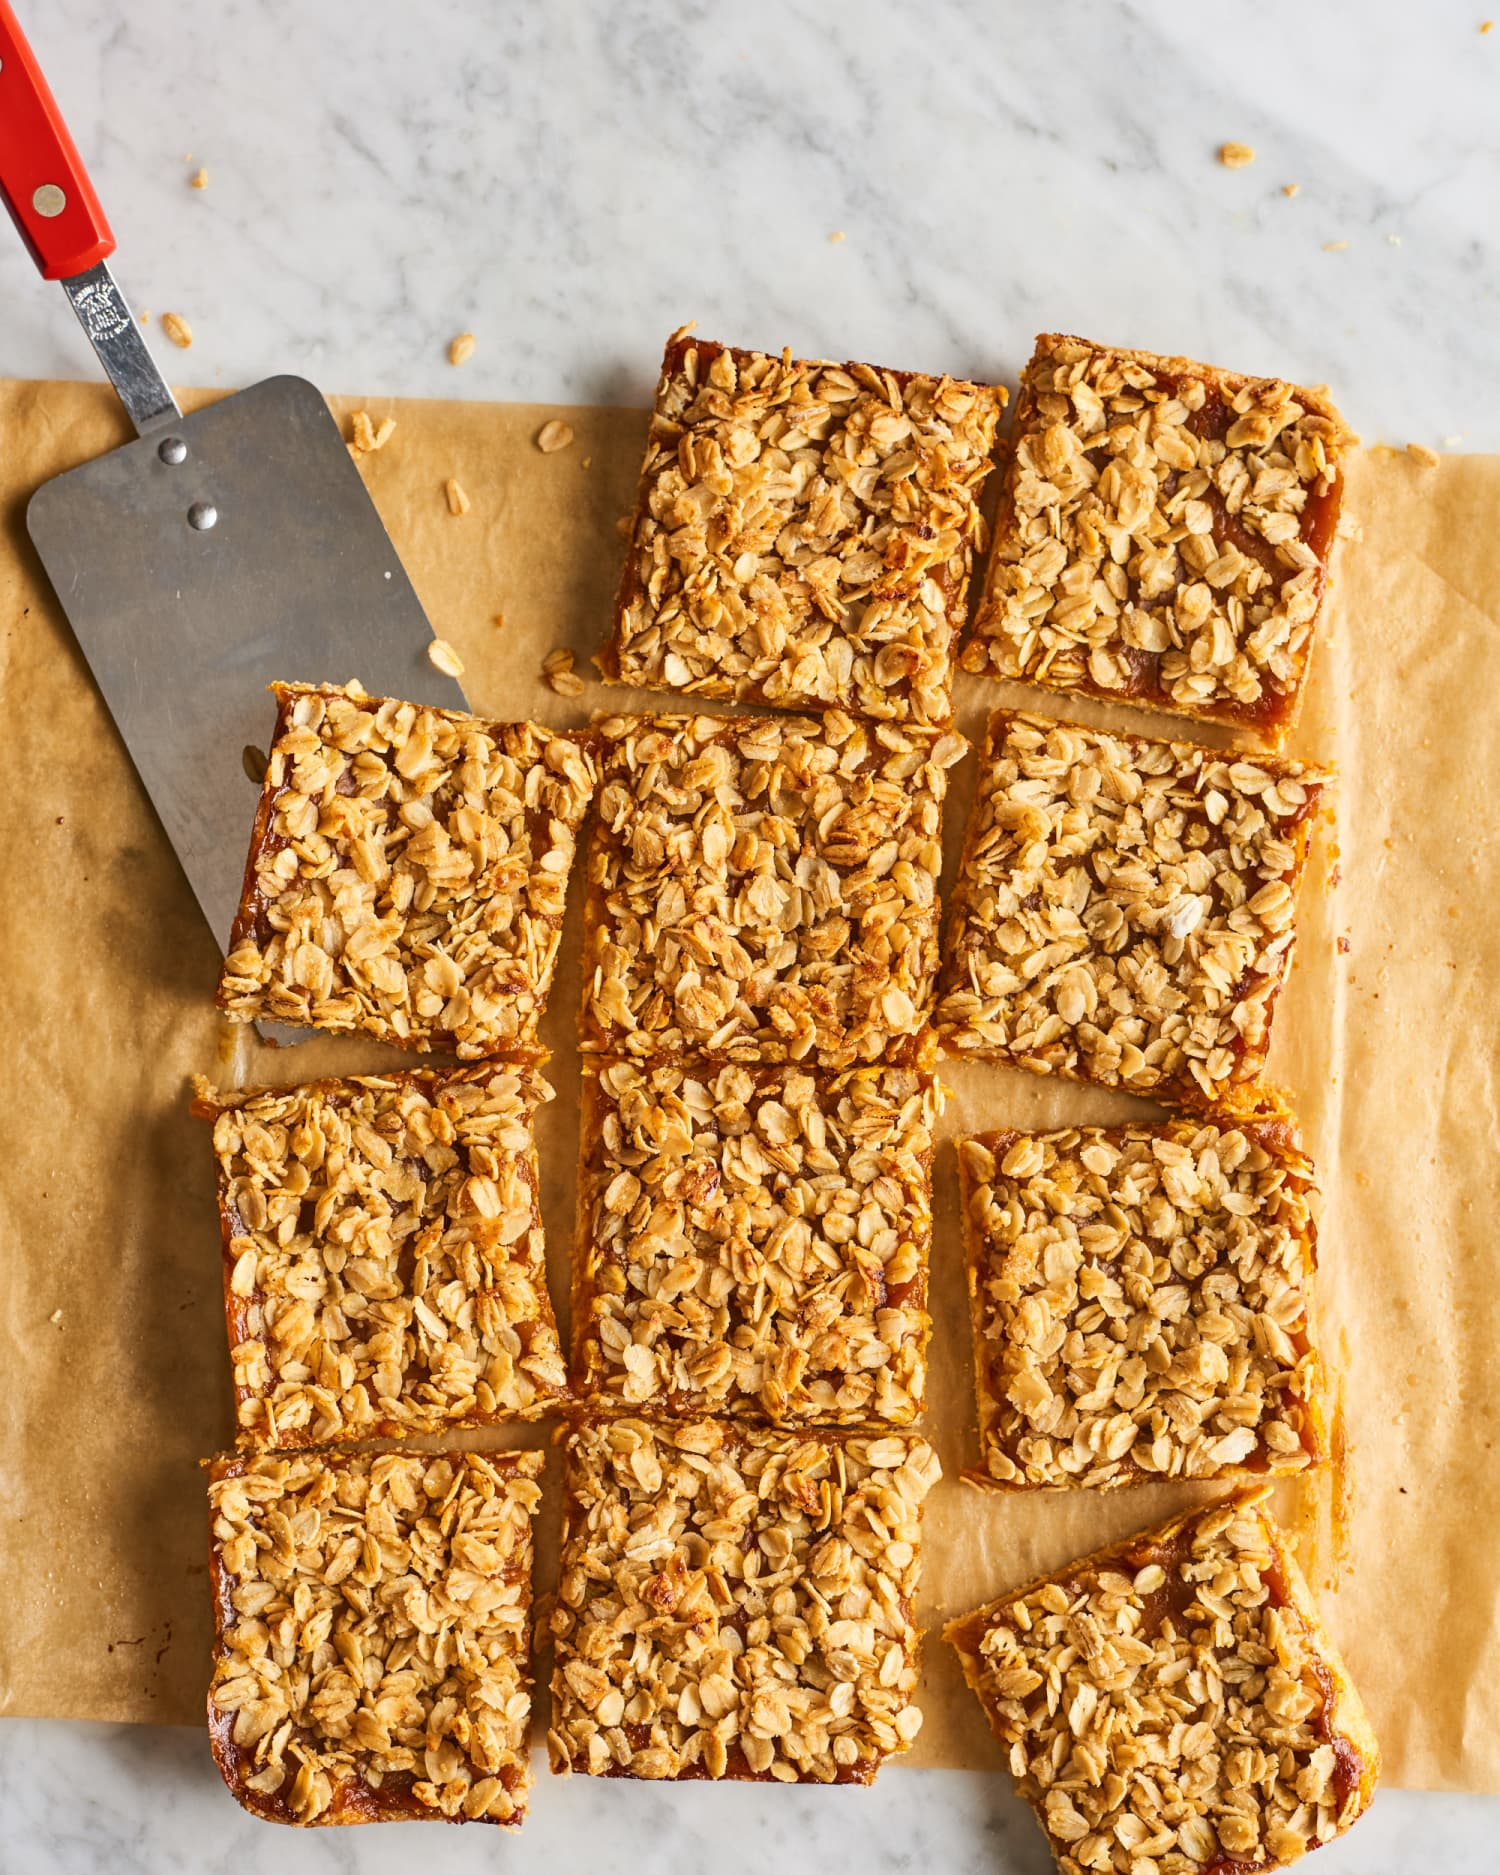 5-Ingredient Pumpkin Bars Are Like Eating a Pie, a Cookie, and a Crumble All at Once